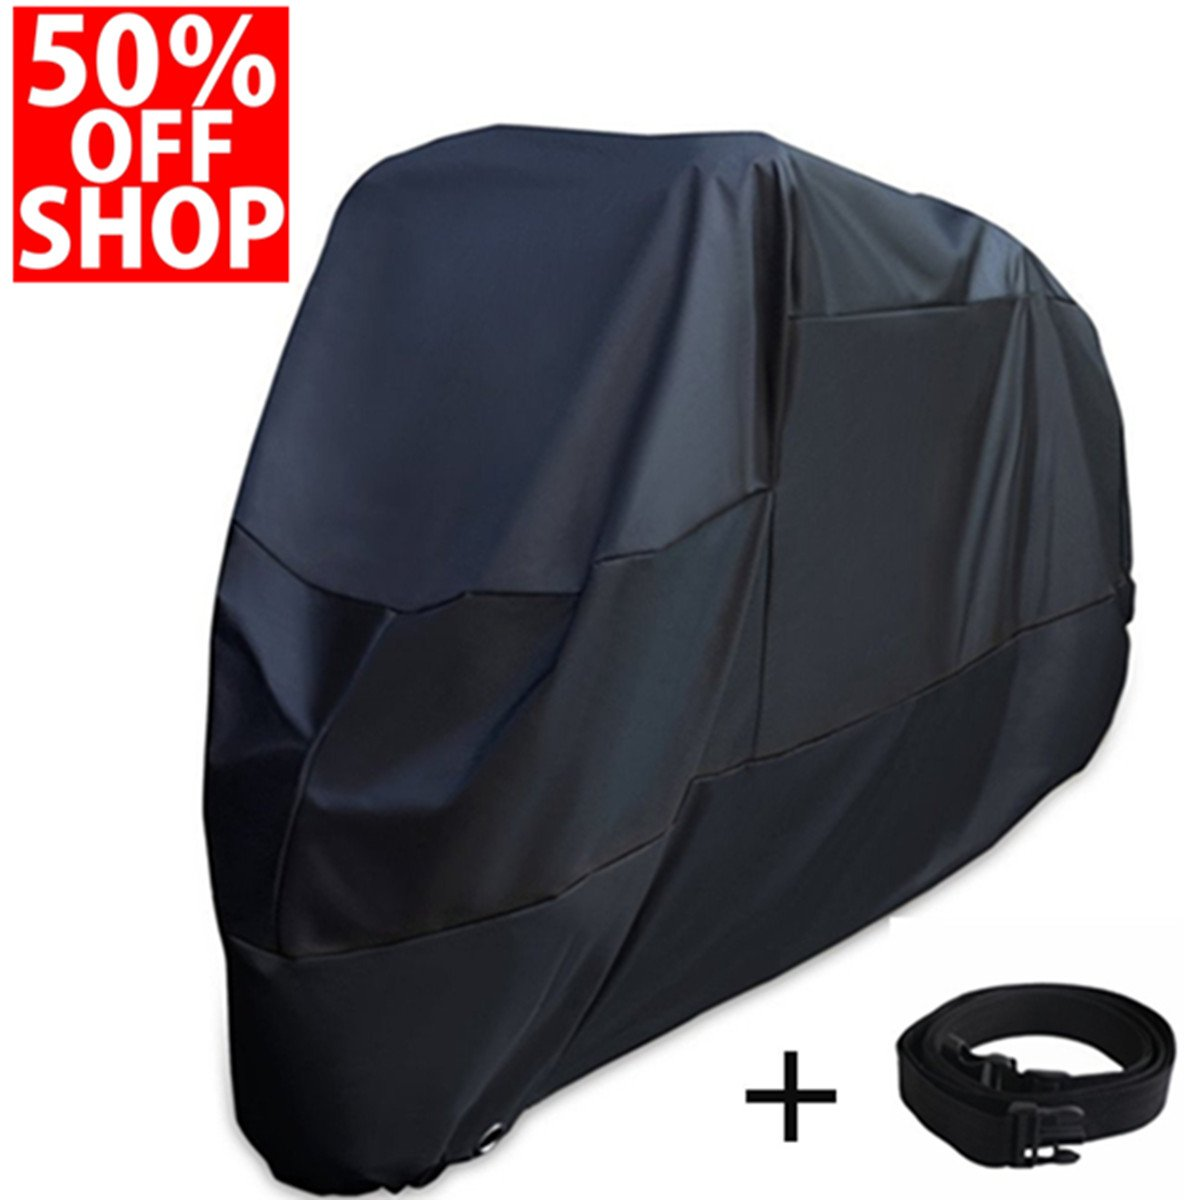 XYZCTEM Motorcycle Cover -Waterproof Outdoor Storage Bag,Fits up to 108 inch Motors,Compatible with Harley Davison and Most motors(Black& Lockholes& Professional Windproof Strap)